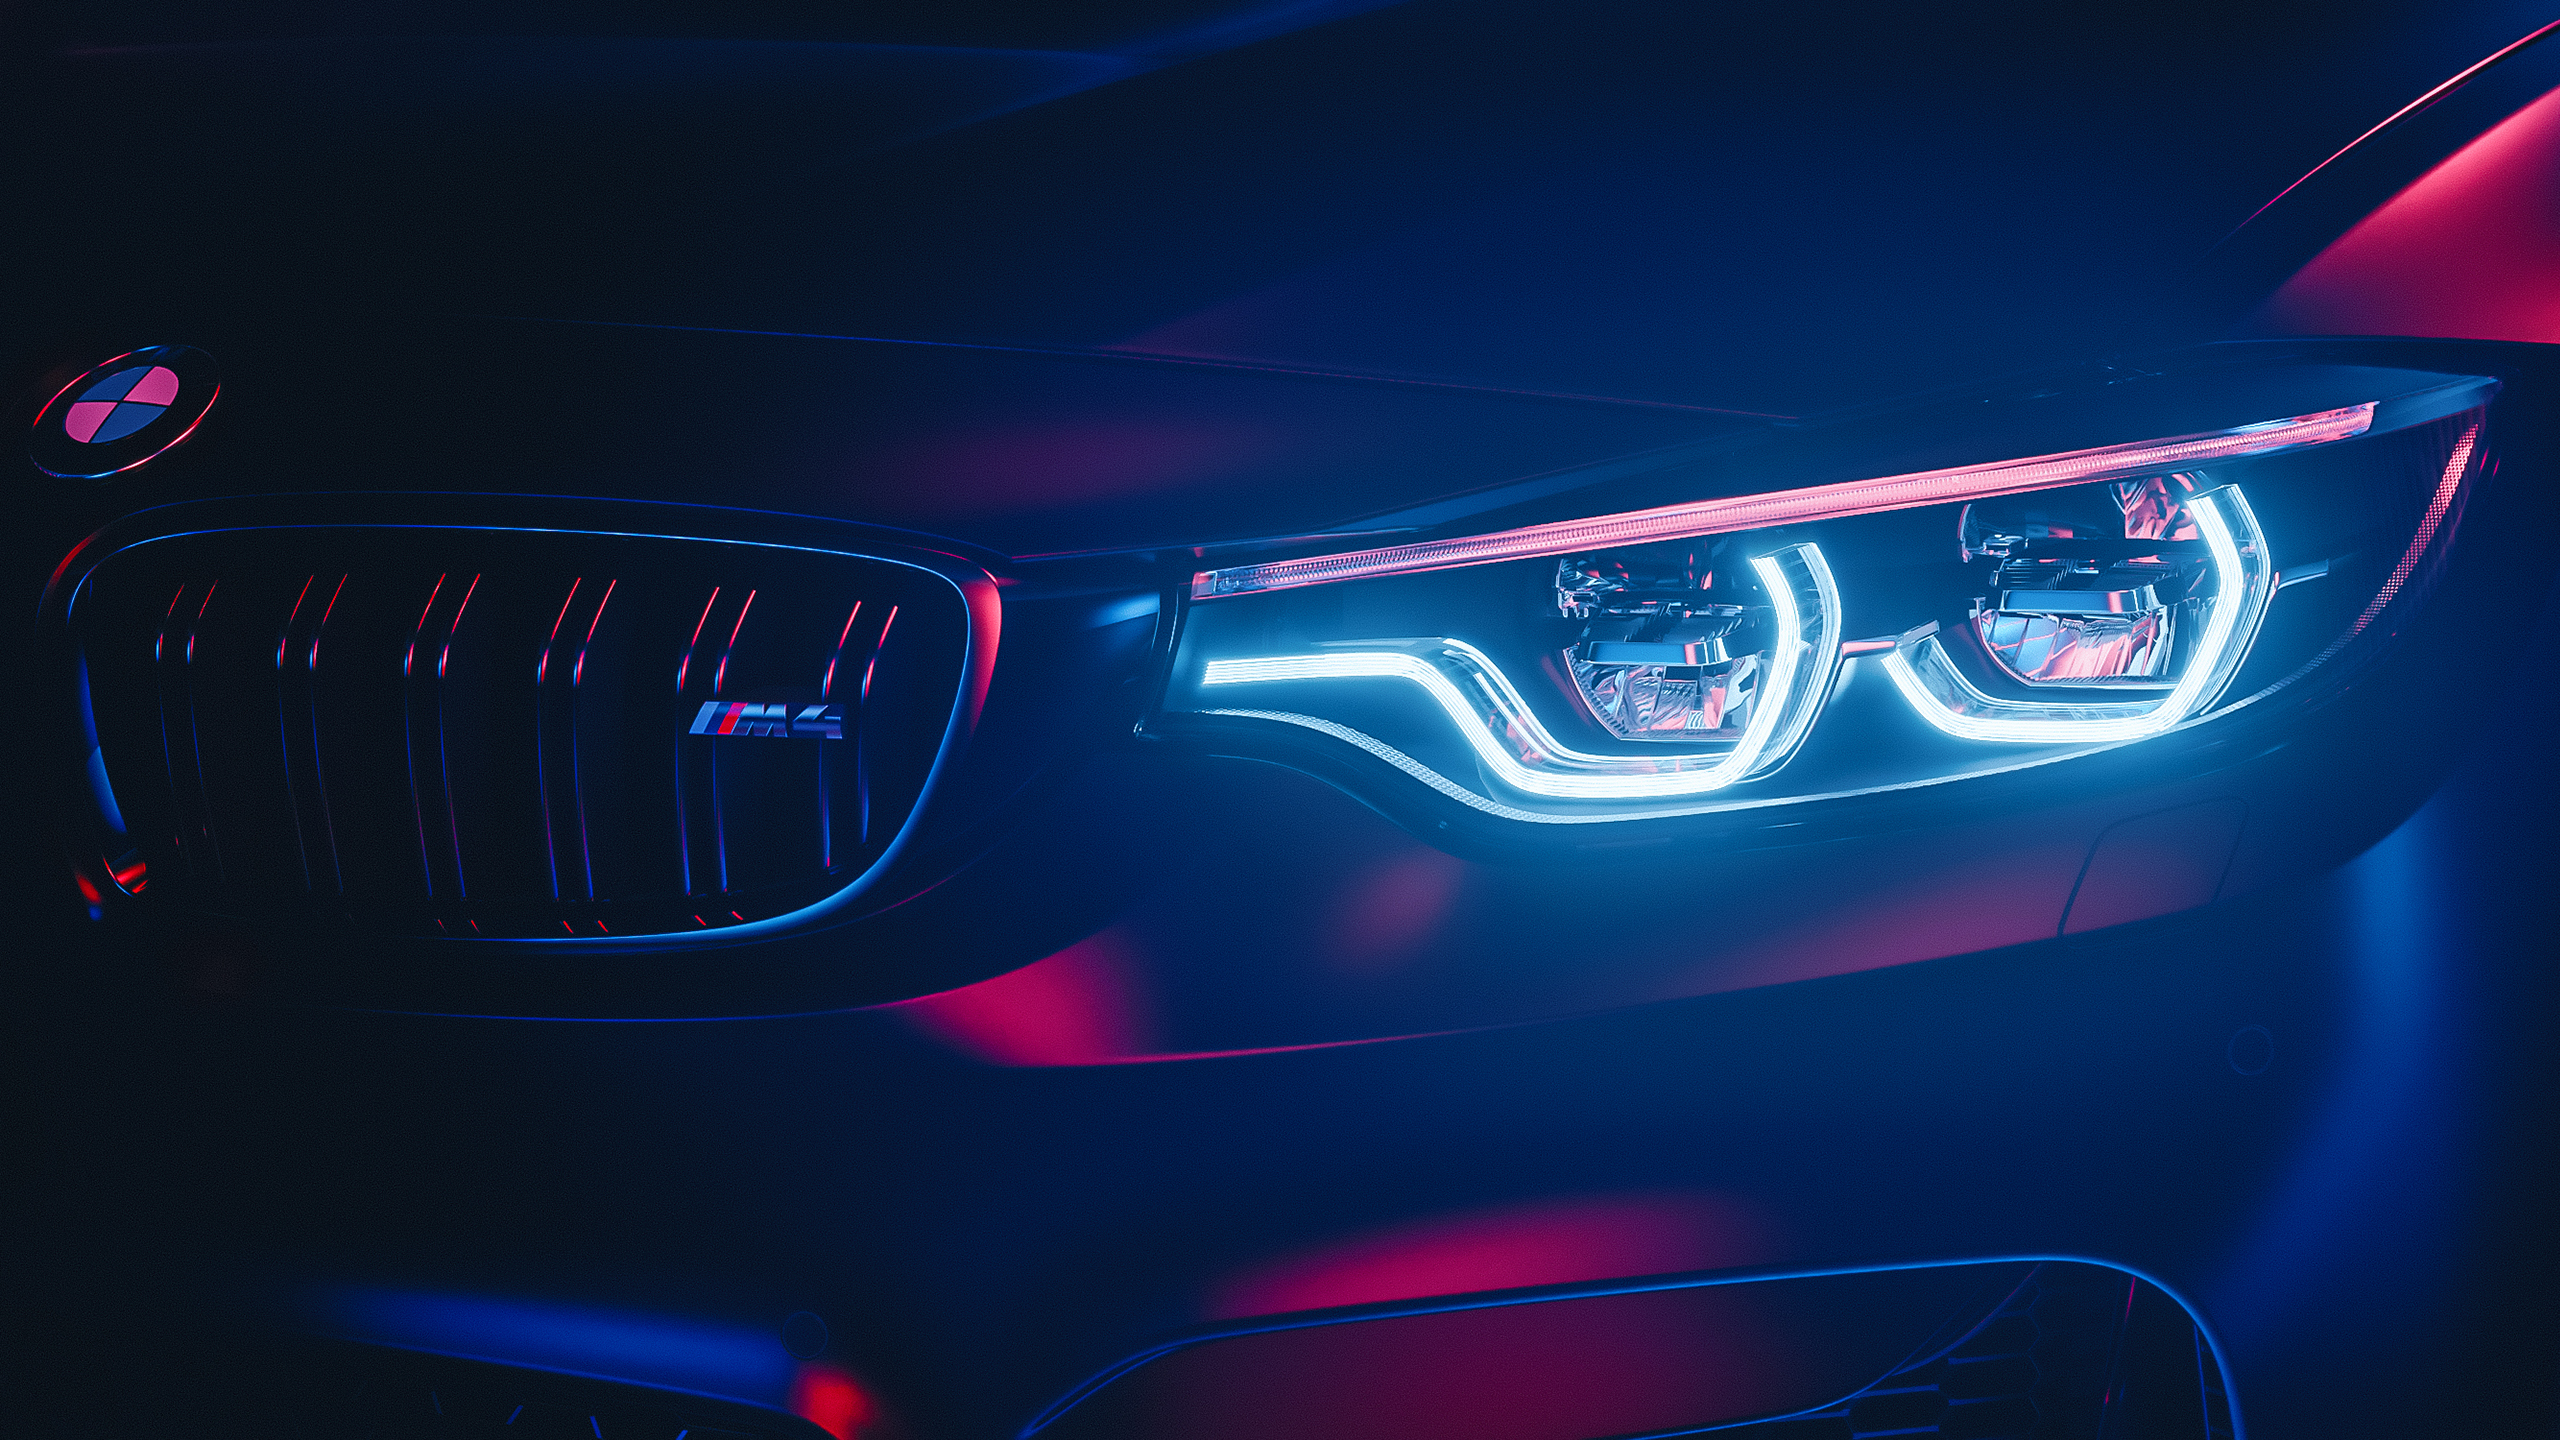 Bmw M4 M Performance Led Headlights Wallpaper Hd Car